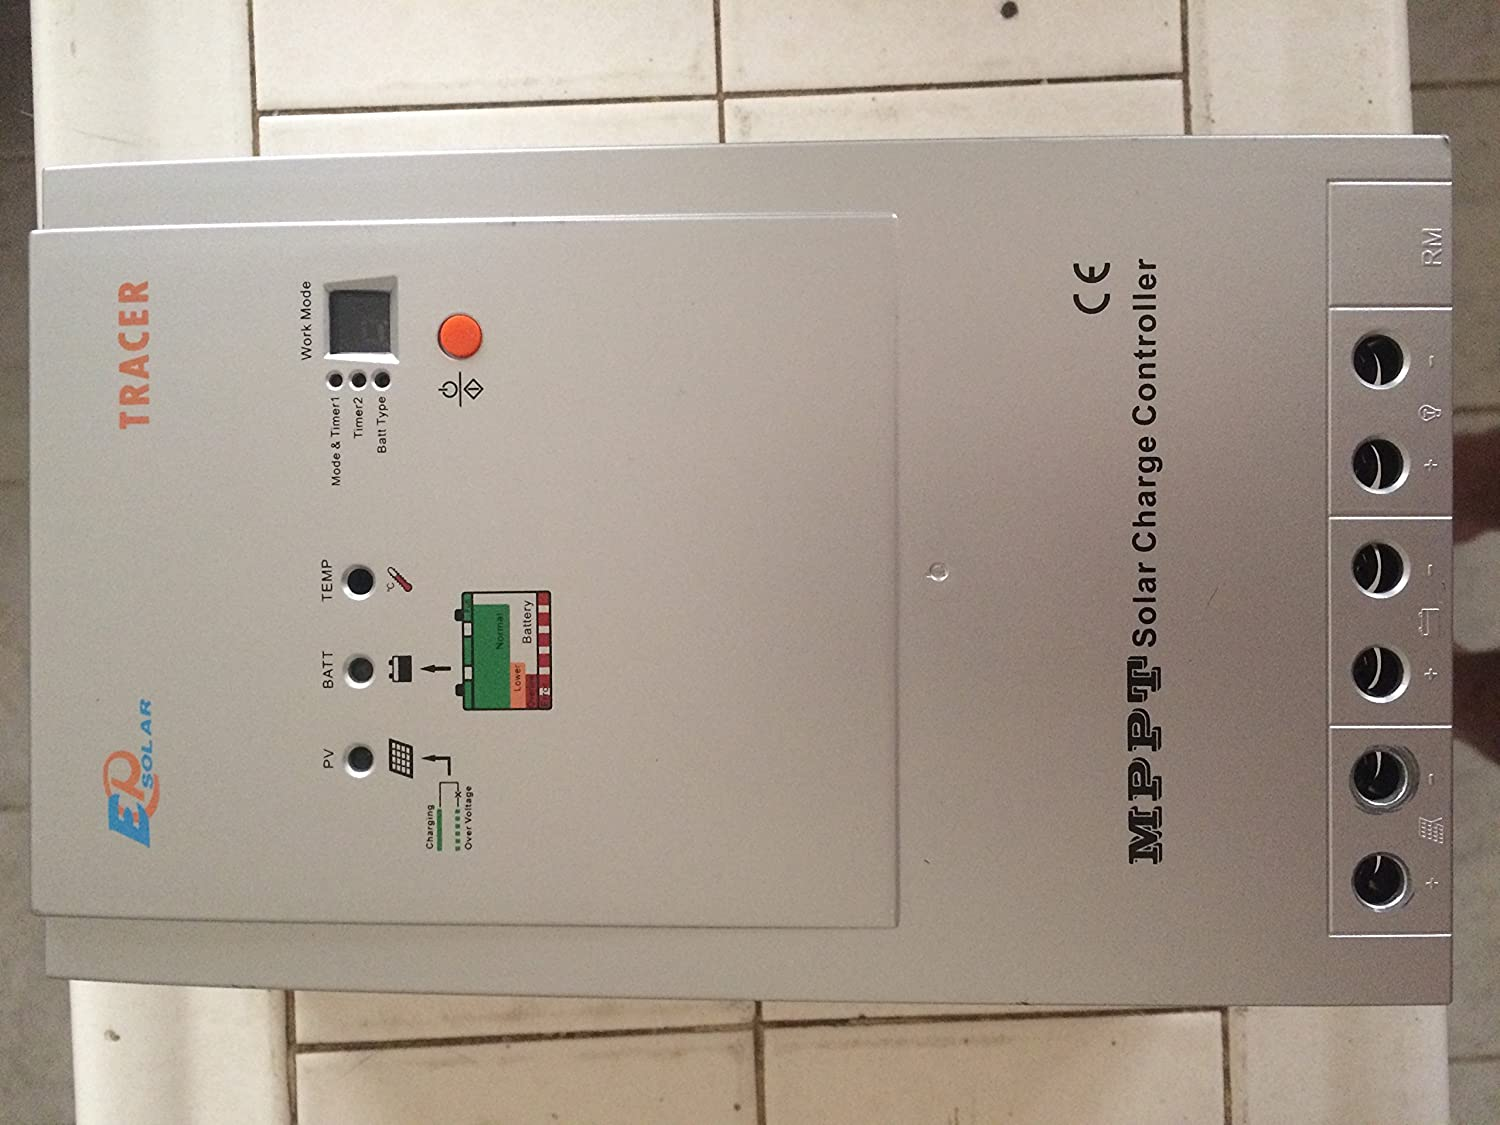 91Ba7JKVAlL._SL1500_ amazon com mppt tracer 3215rn solar charge controller 30a 12v  at gsmx.co